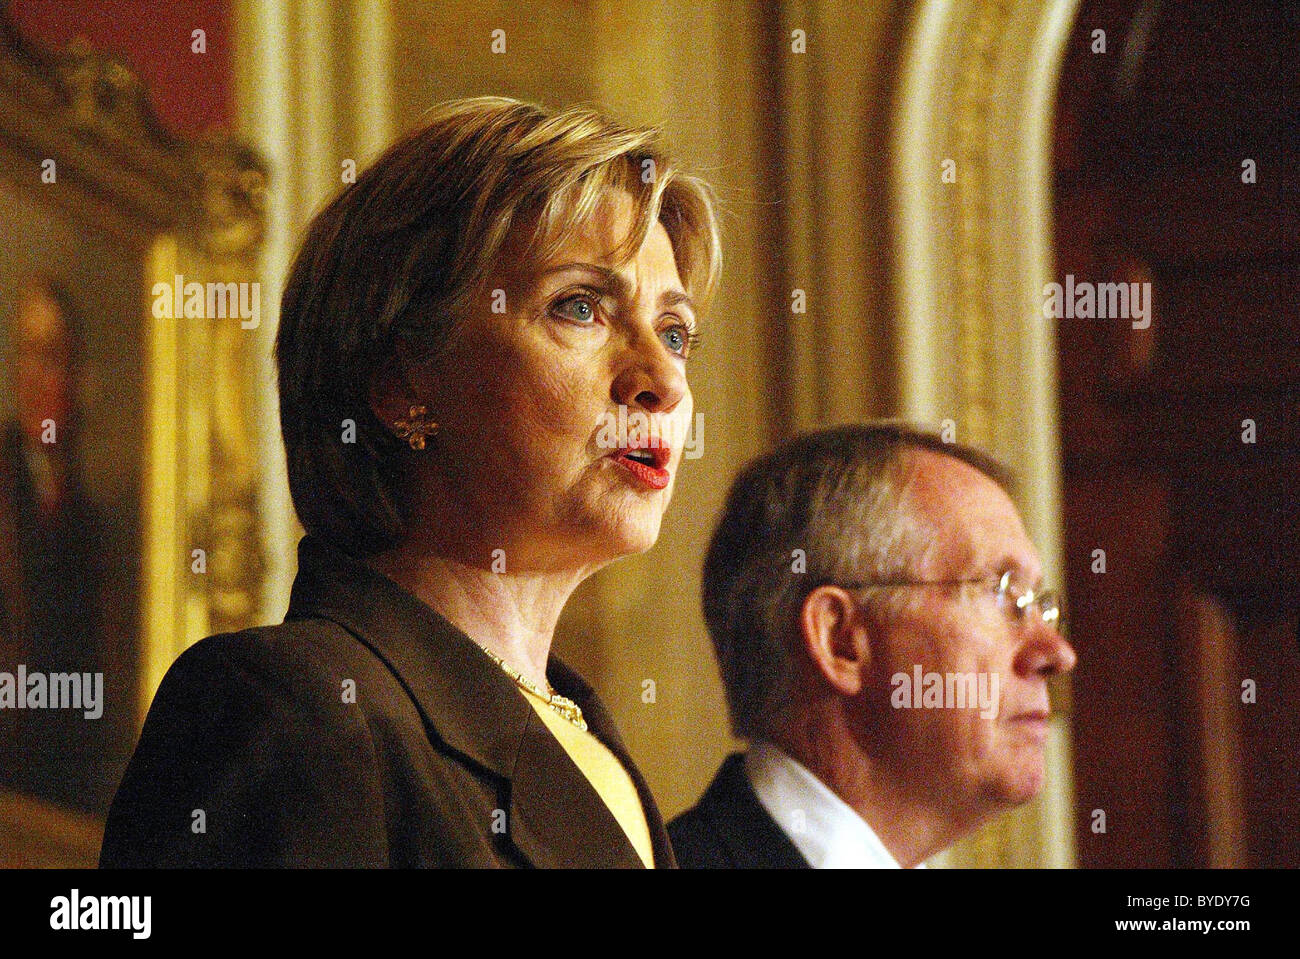 senator Hillary Clinton  spoke on prevention first to thwart unwanted pregnancies at the LBJ Room The Capitol Washington - Stock Image